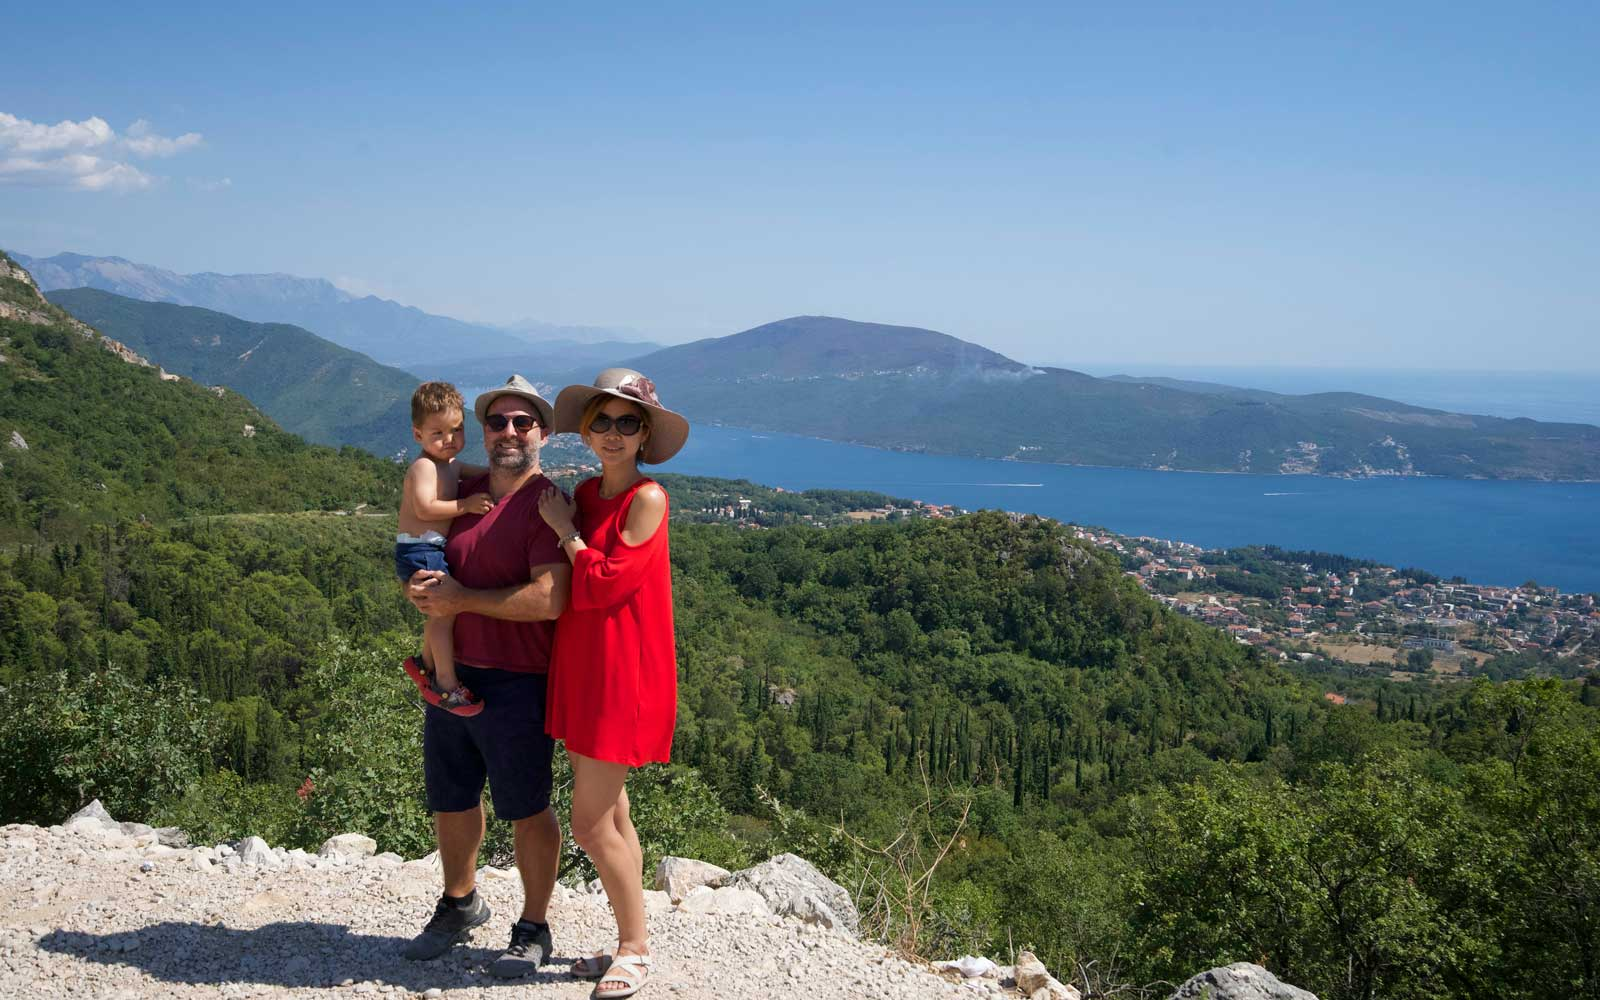 Jeremy, Winnie, and Julian in Montenegro